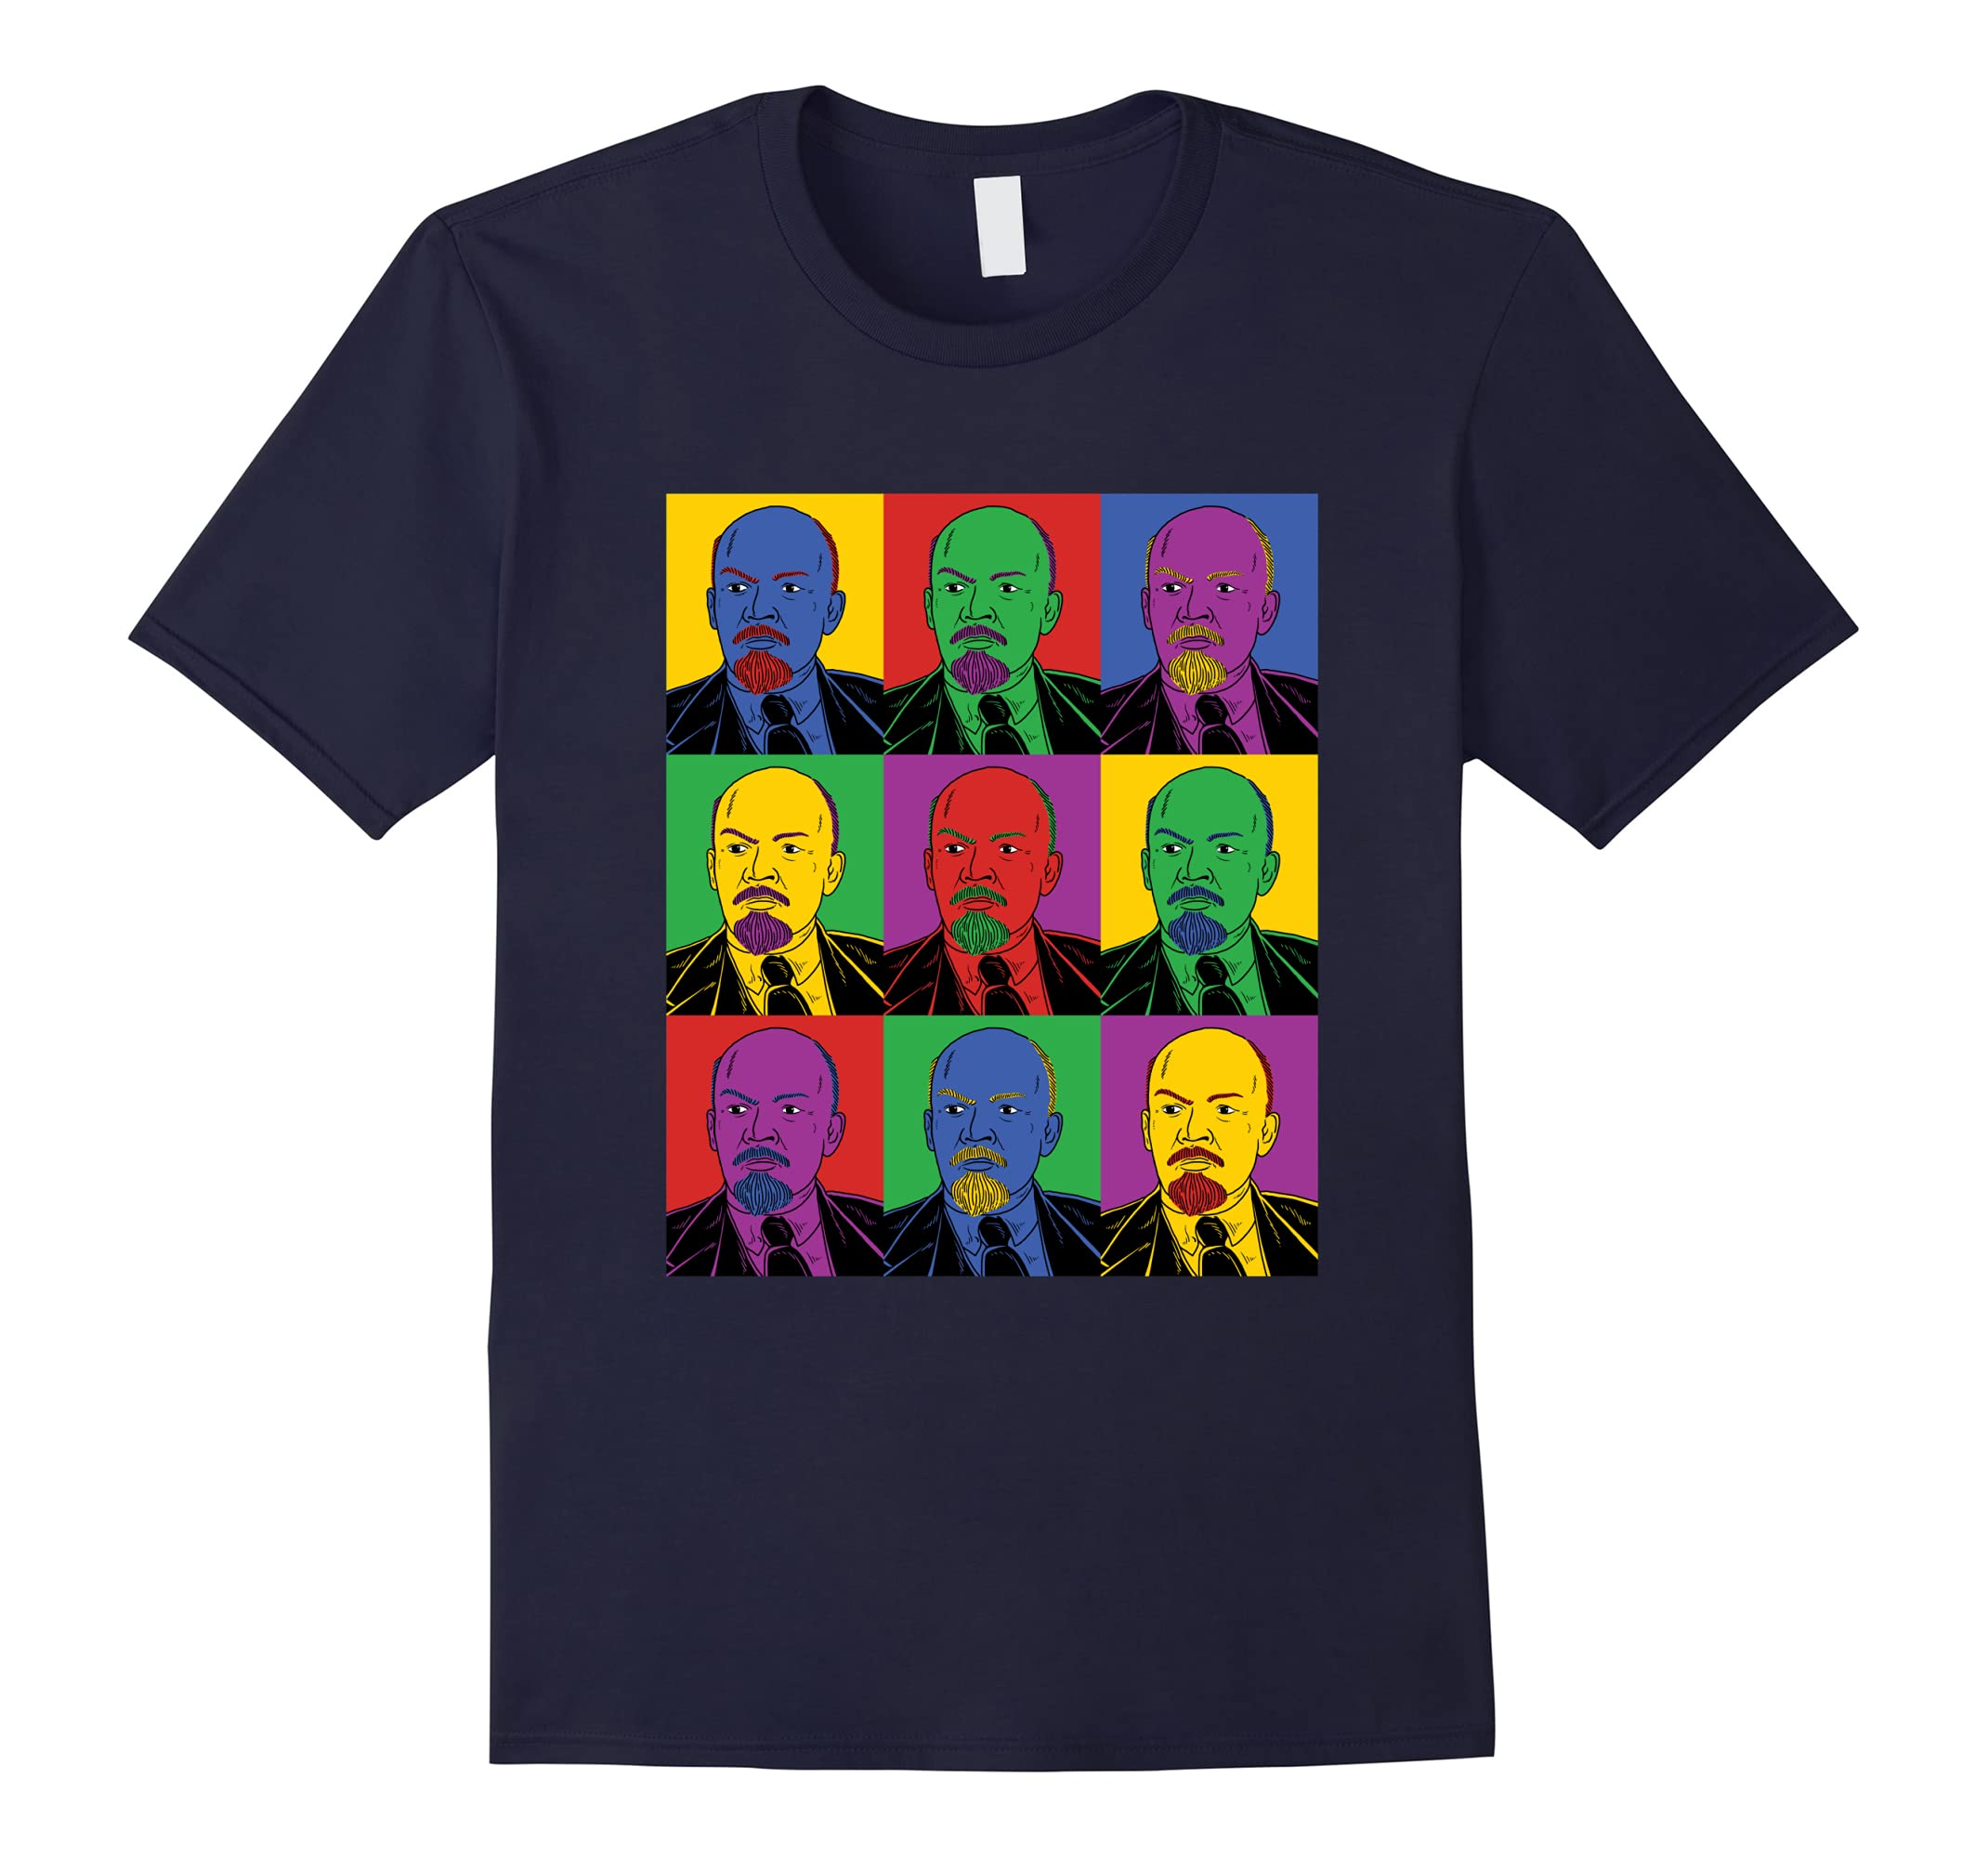 Vladimir Lenin Pop Art T-Shirt - Vintage History Tee-ah my shirt one gift